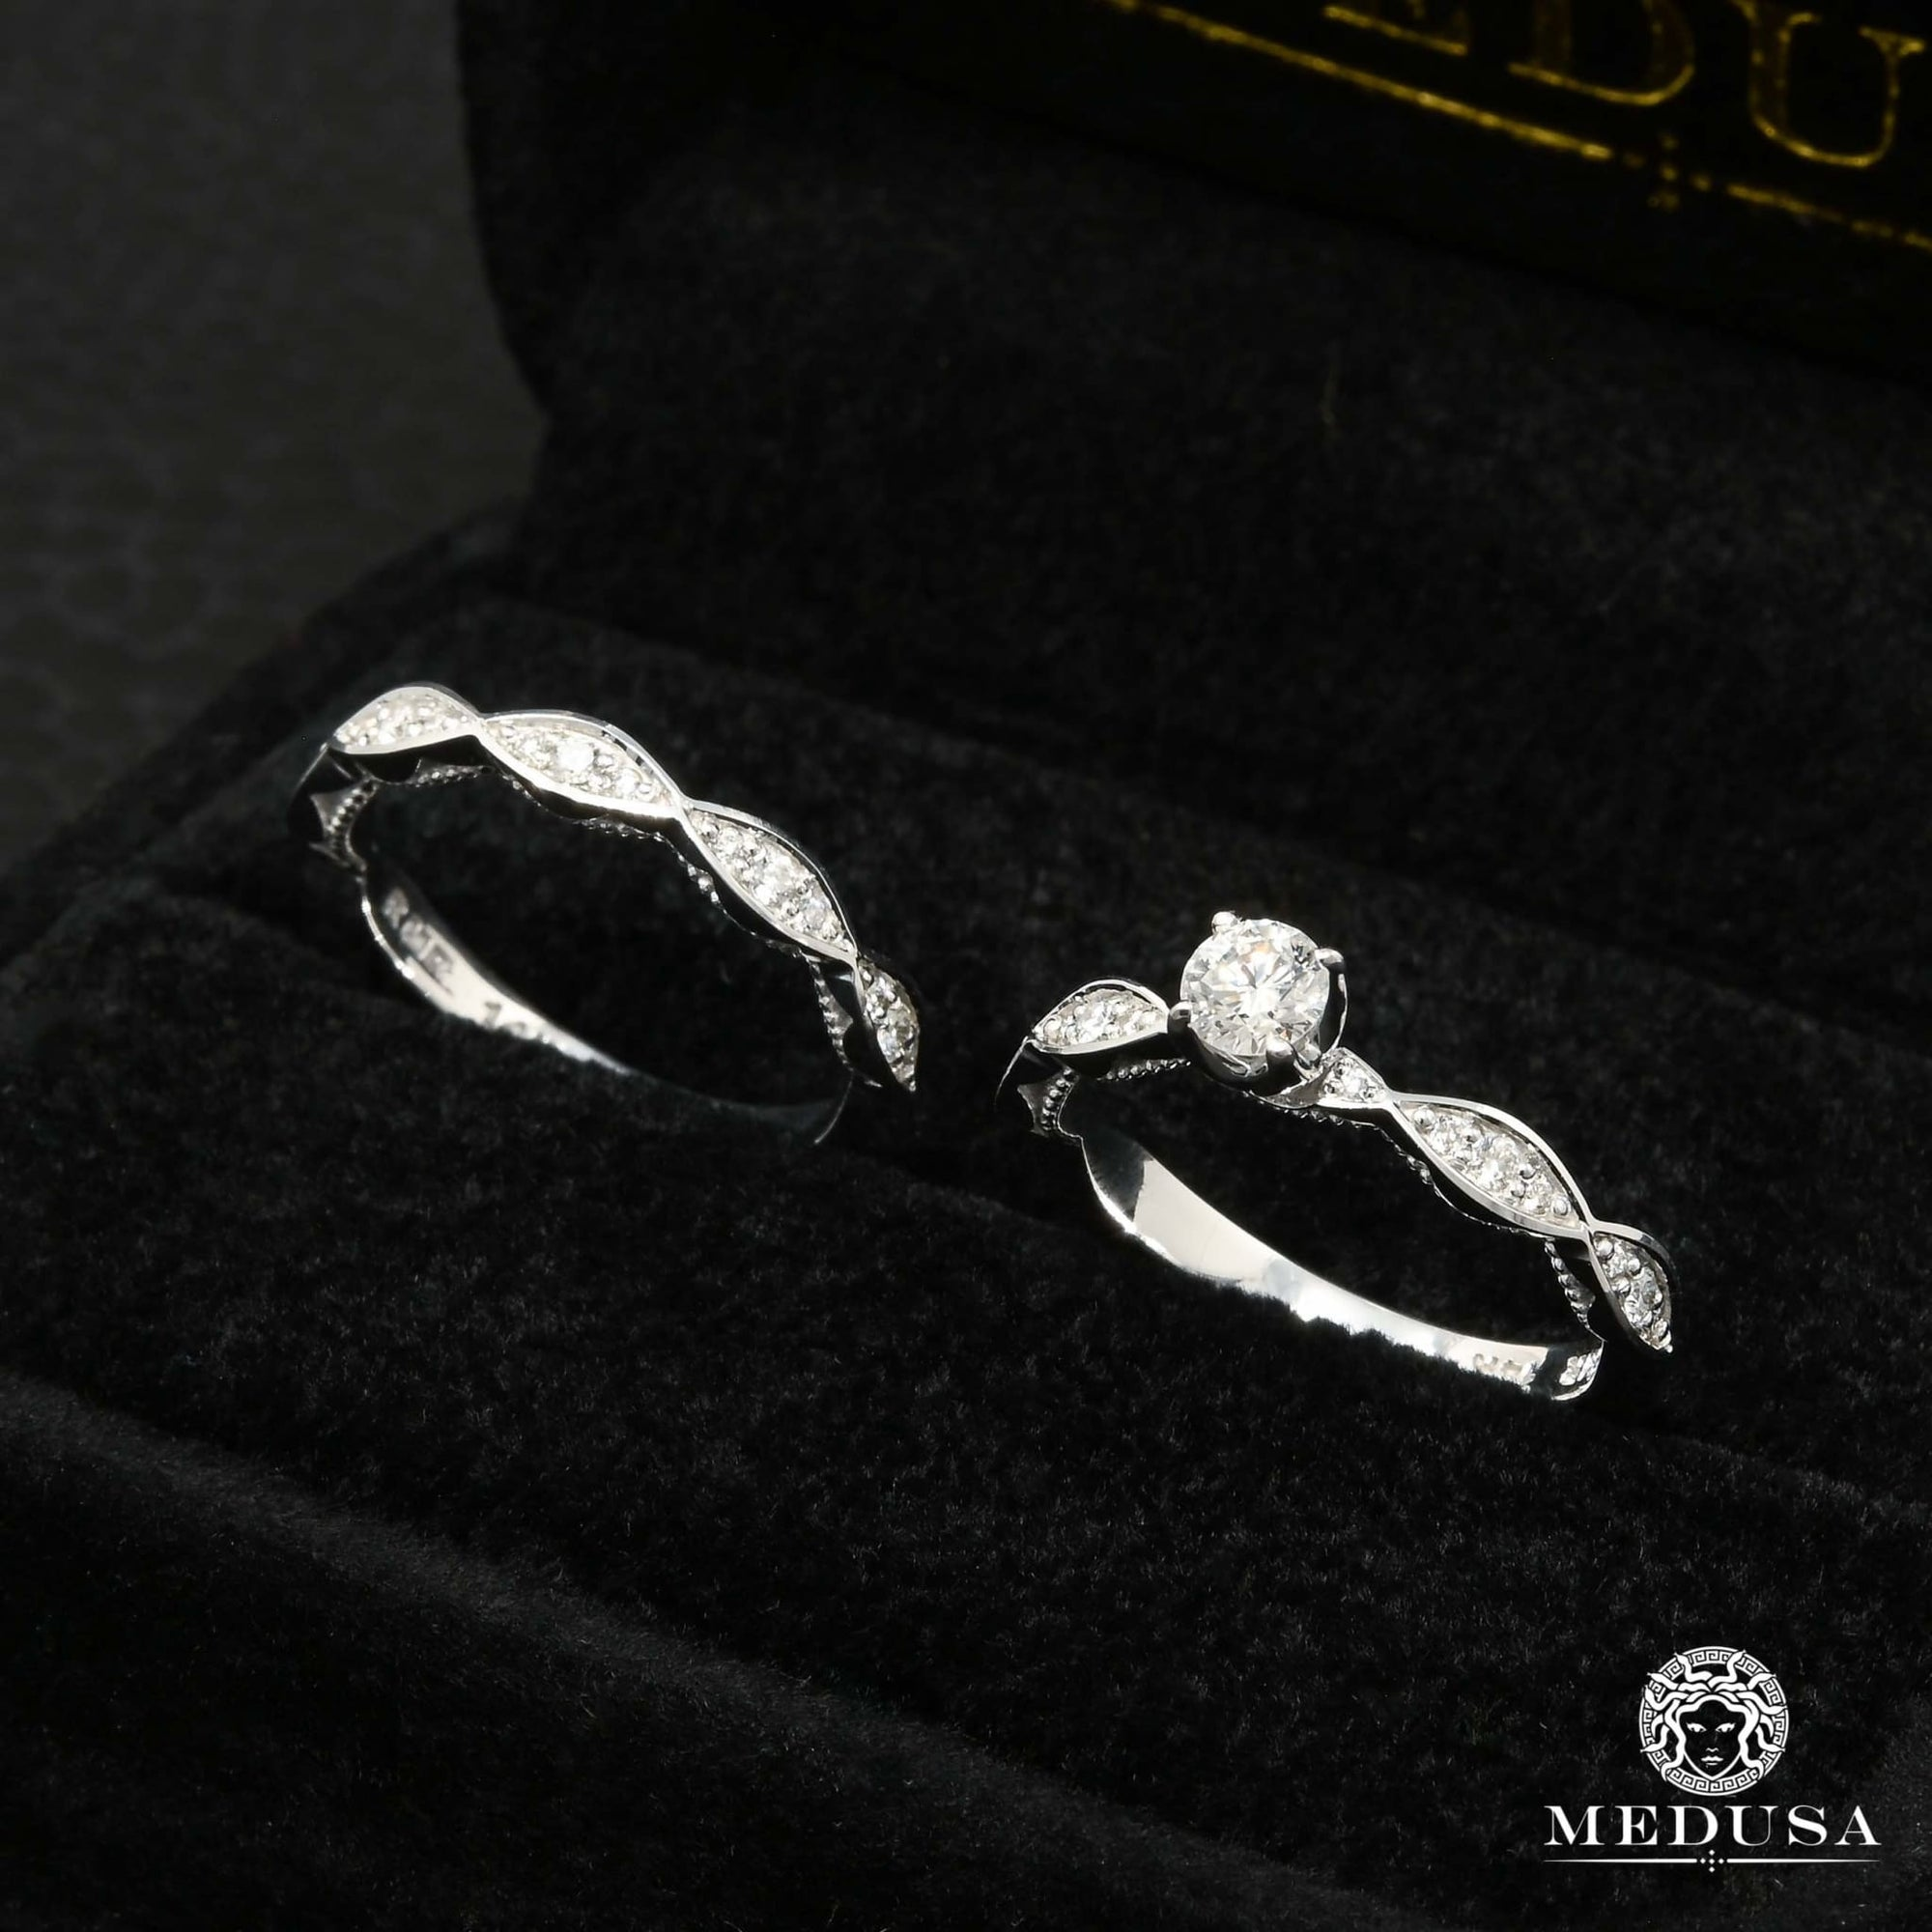 Bague à Diamants en Or 14K | Bague Fiançaille Solitaire Set F2 Set / Or Blanc